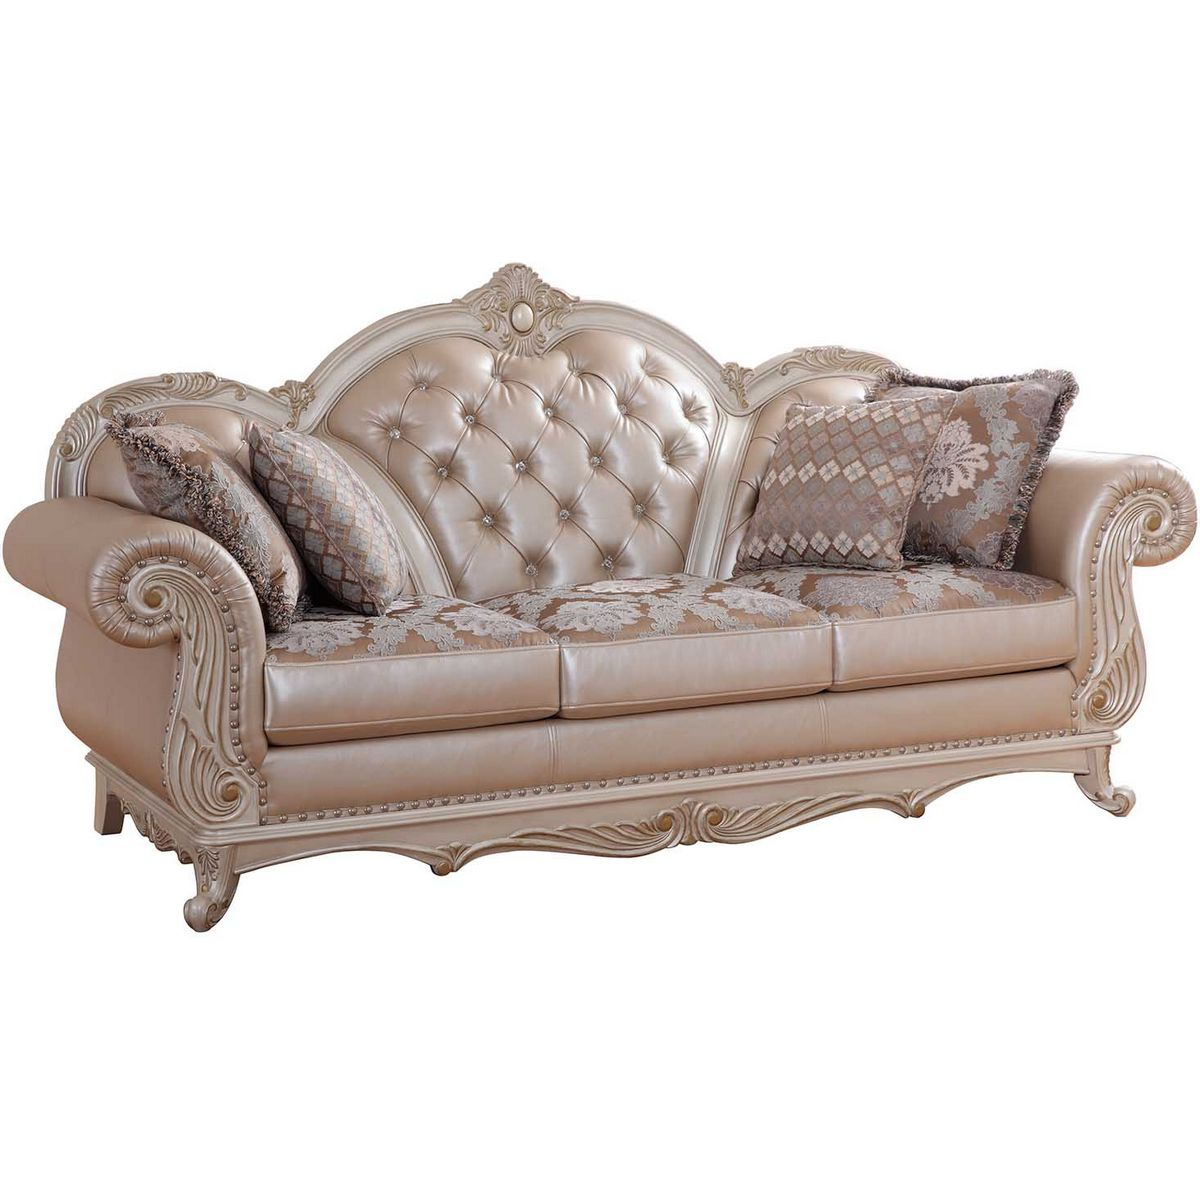 Marvelous Marquee Pearl Crystal Tufted Leather Sofa W/ French Provincial Carved Frame